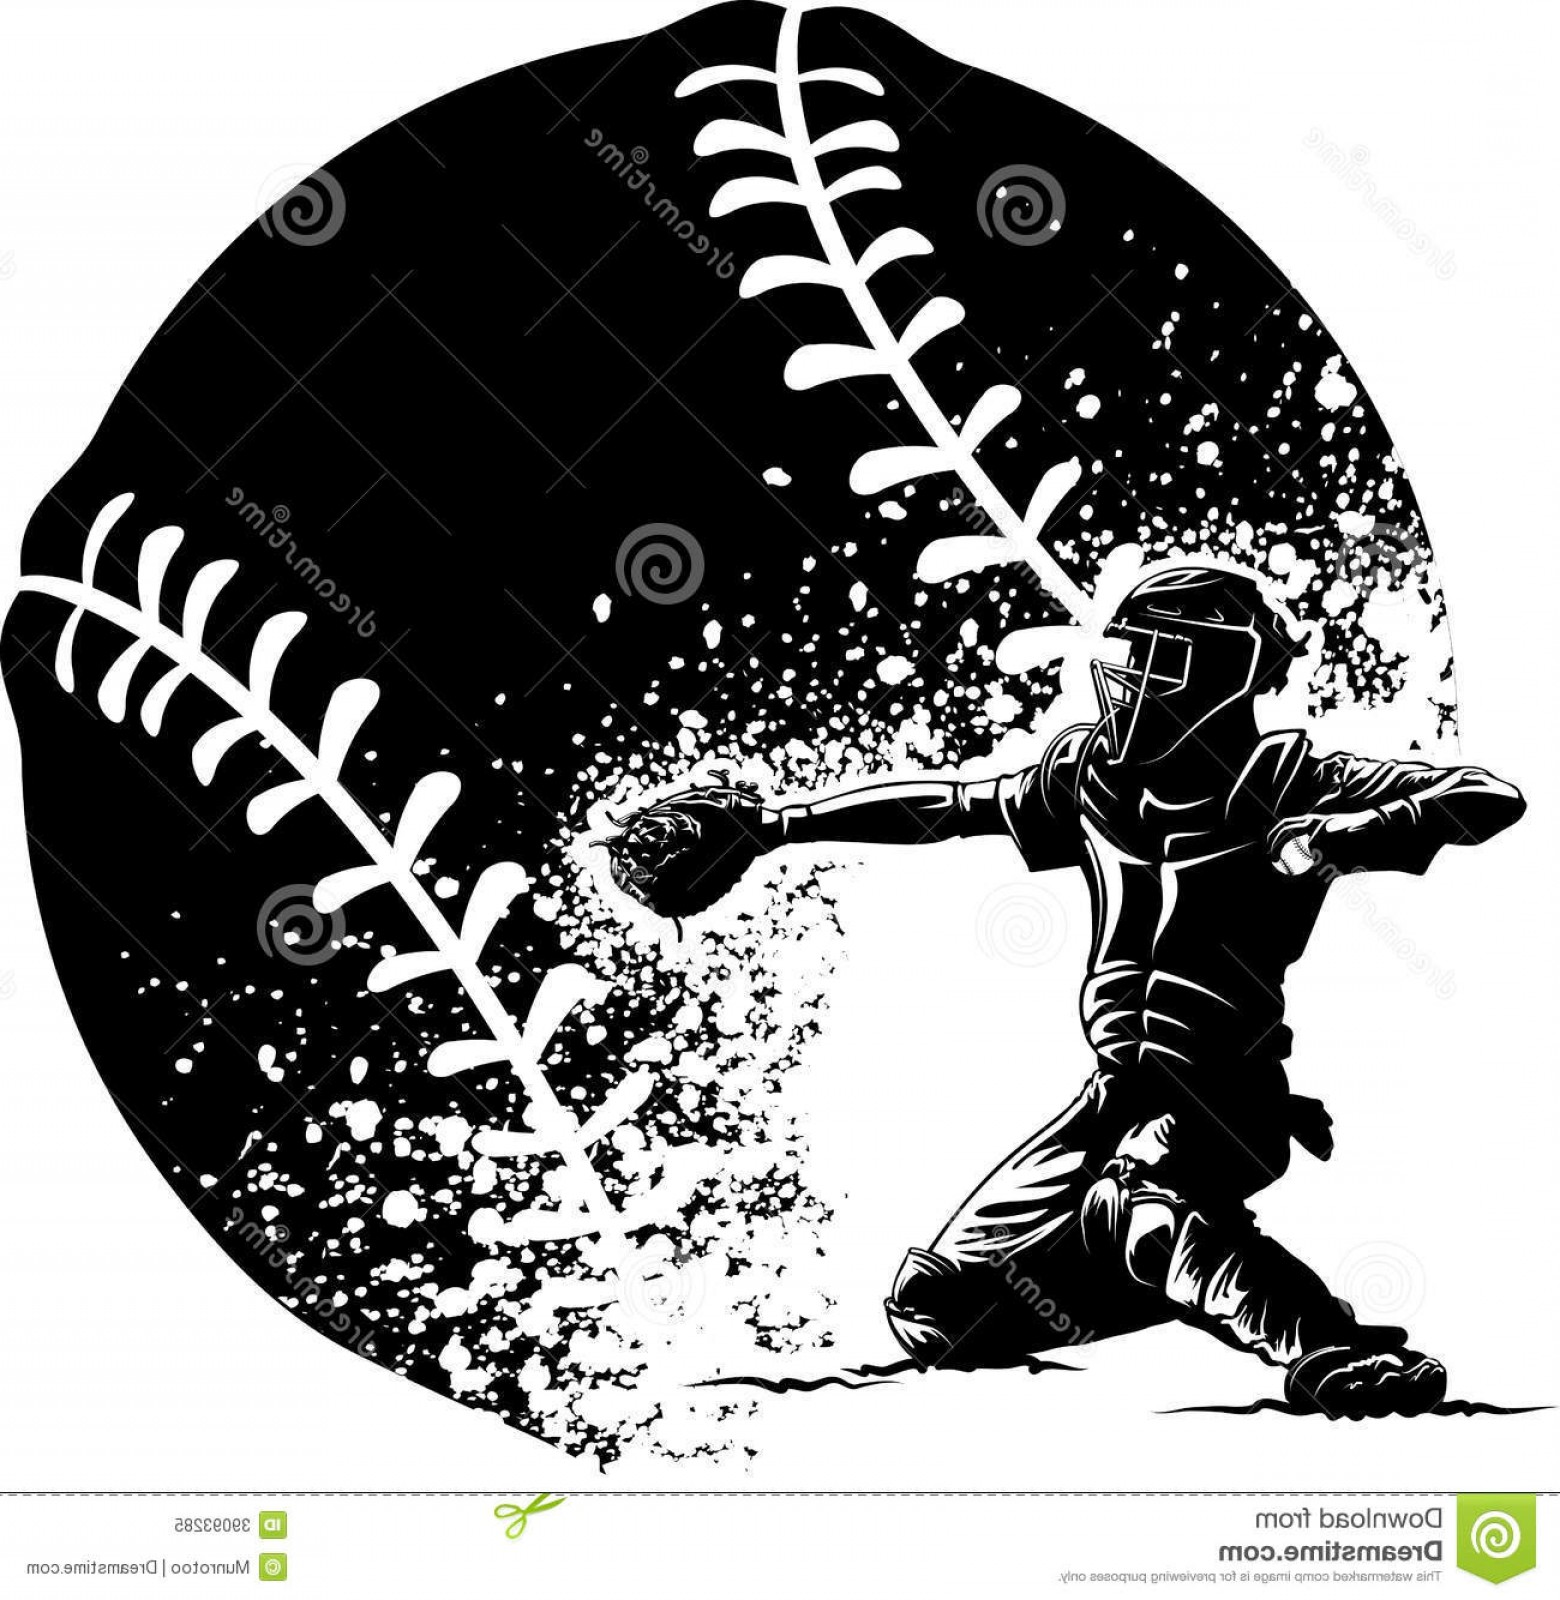 Softball Catcher Vector: Royalty Free Stock Photo Baseball Catcher Home Plate Grunge Ball Black White Illustration Getting Ready To Throw Out Runner Front Image